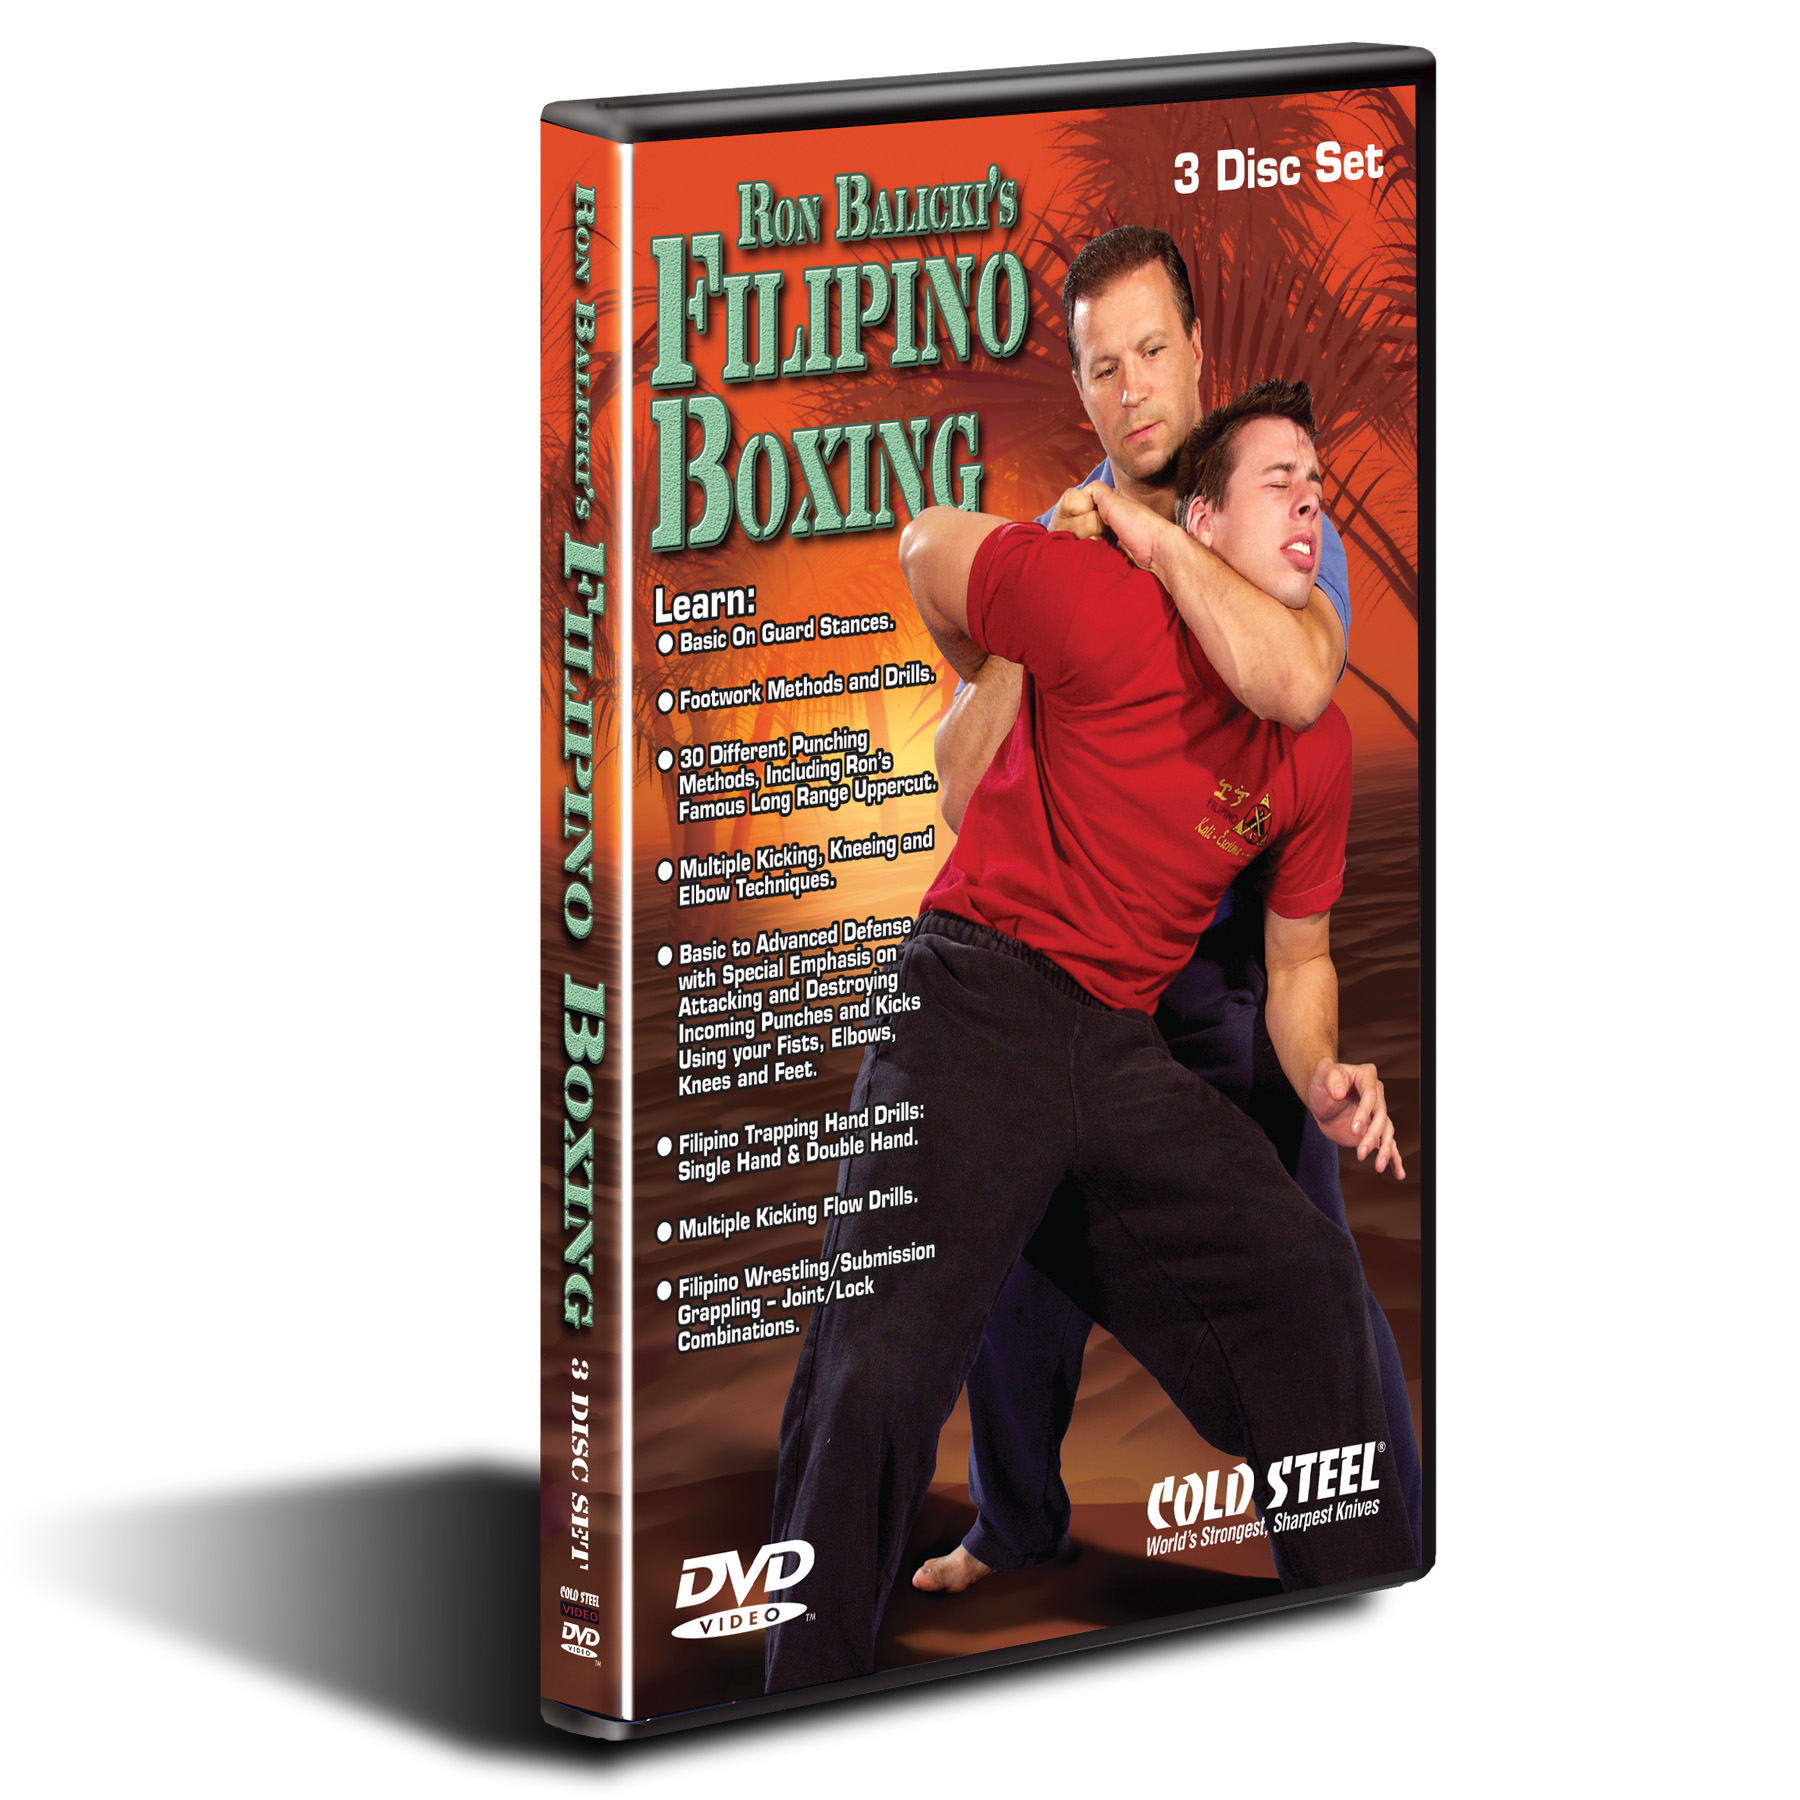 VDFB - COLD STEEL Ron Balicki?s Filipino Boxing DVD